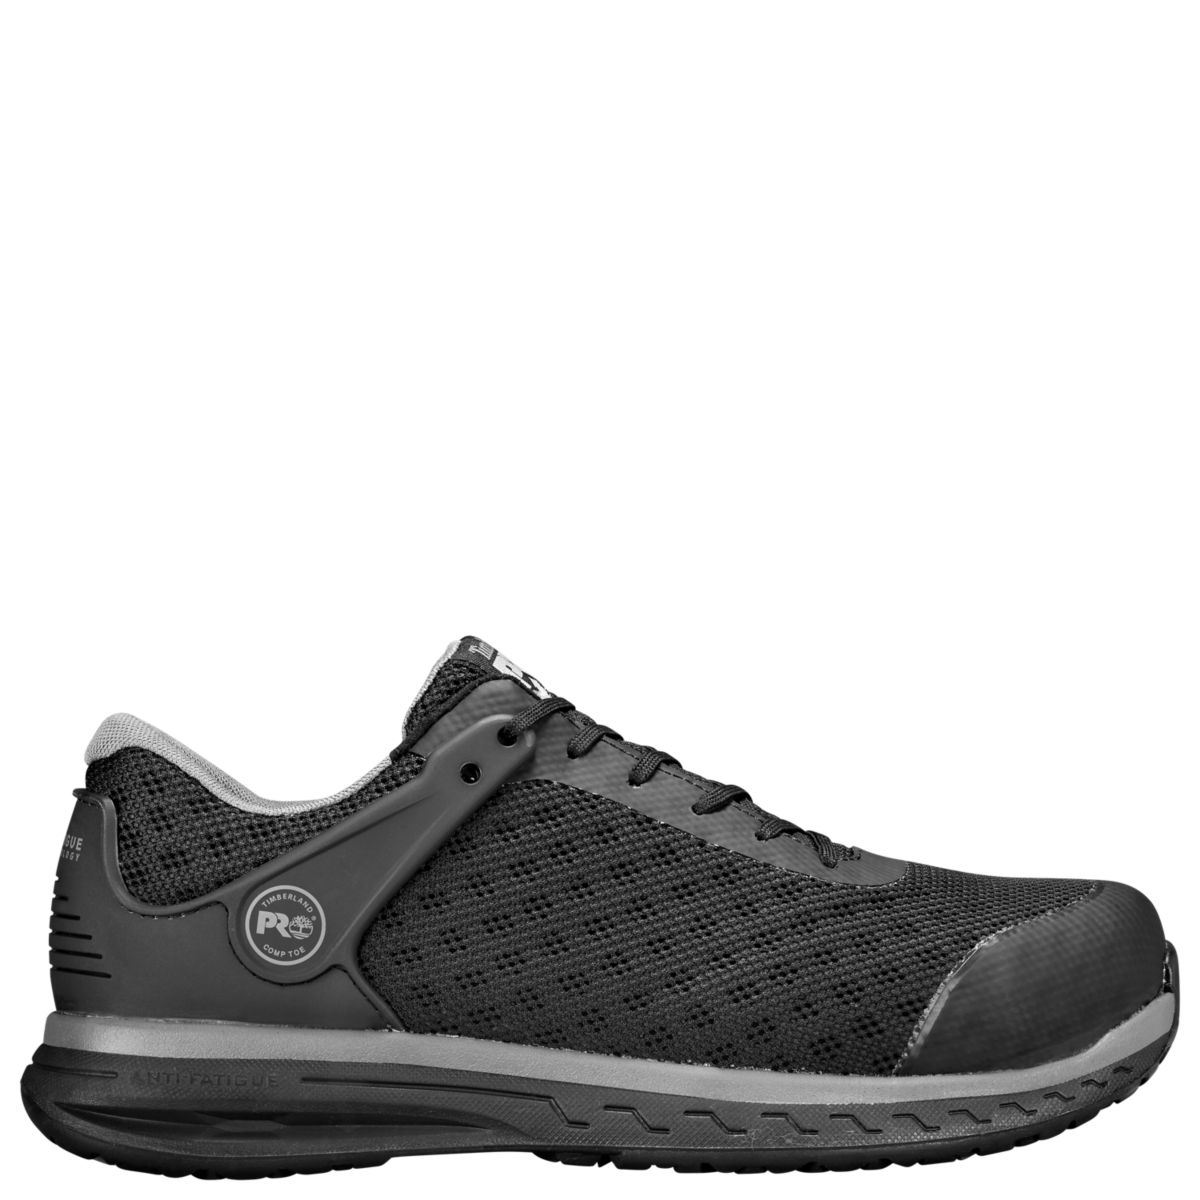 Timberland Pro Mens Drivetrain Composite Safety Toe Black Work Shoes